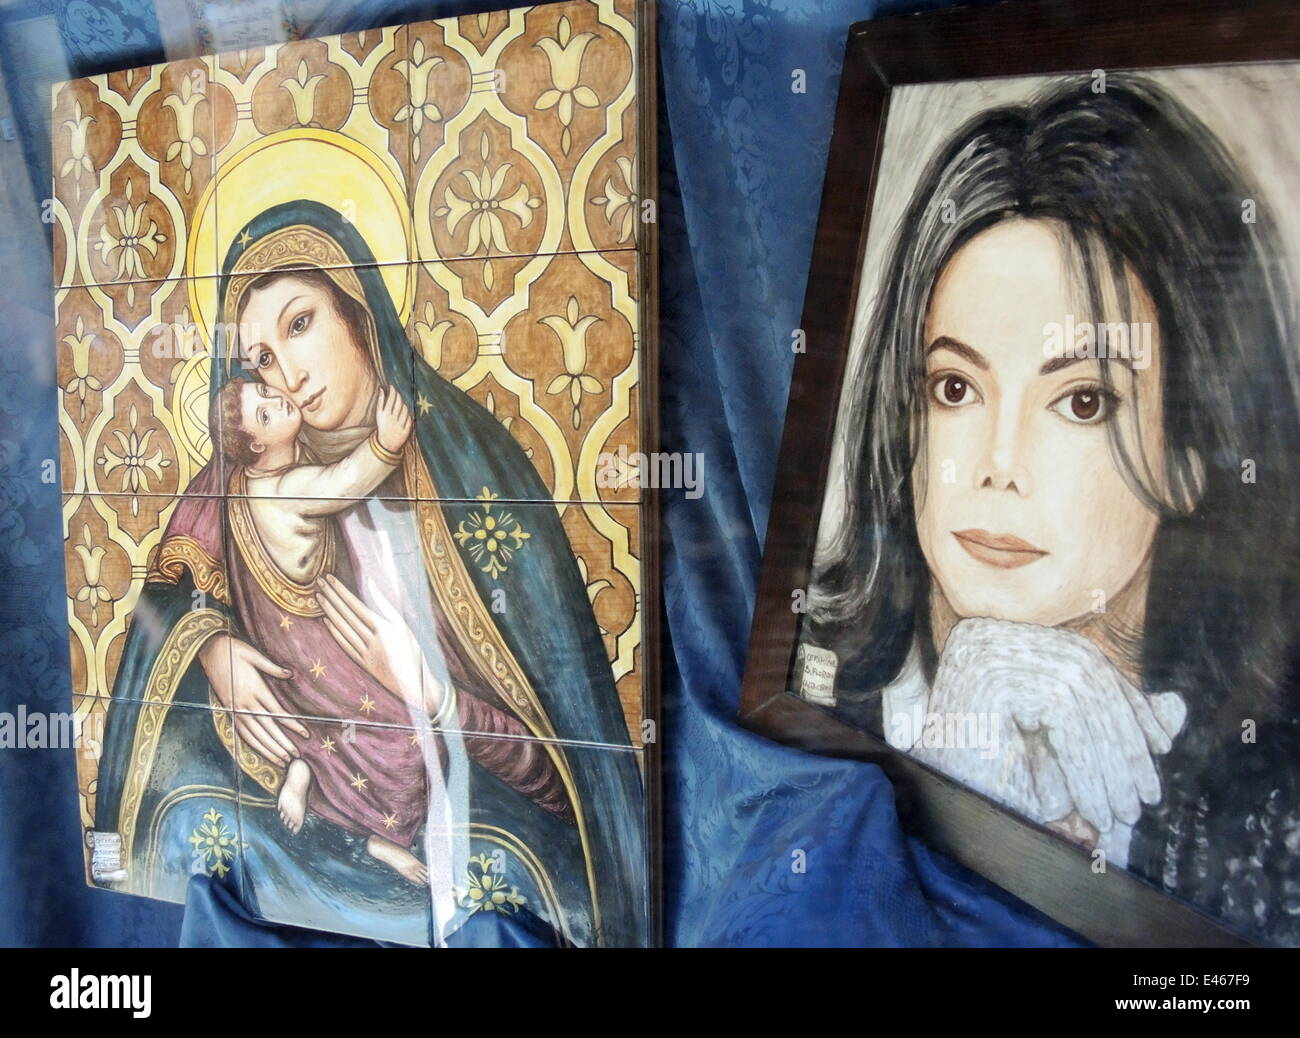 Ceramics From The American Popstar Michael Jackson R And The - Michael jackson religion